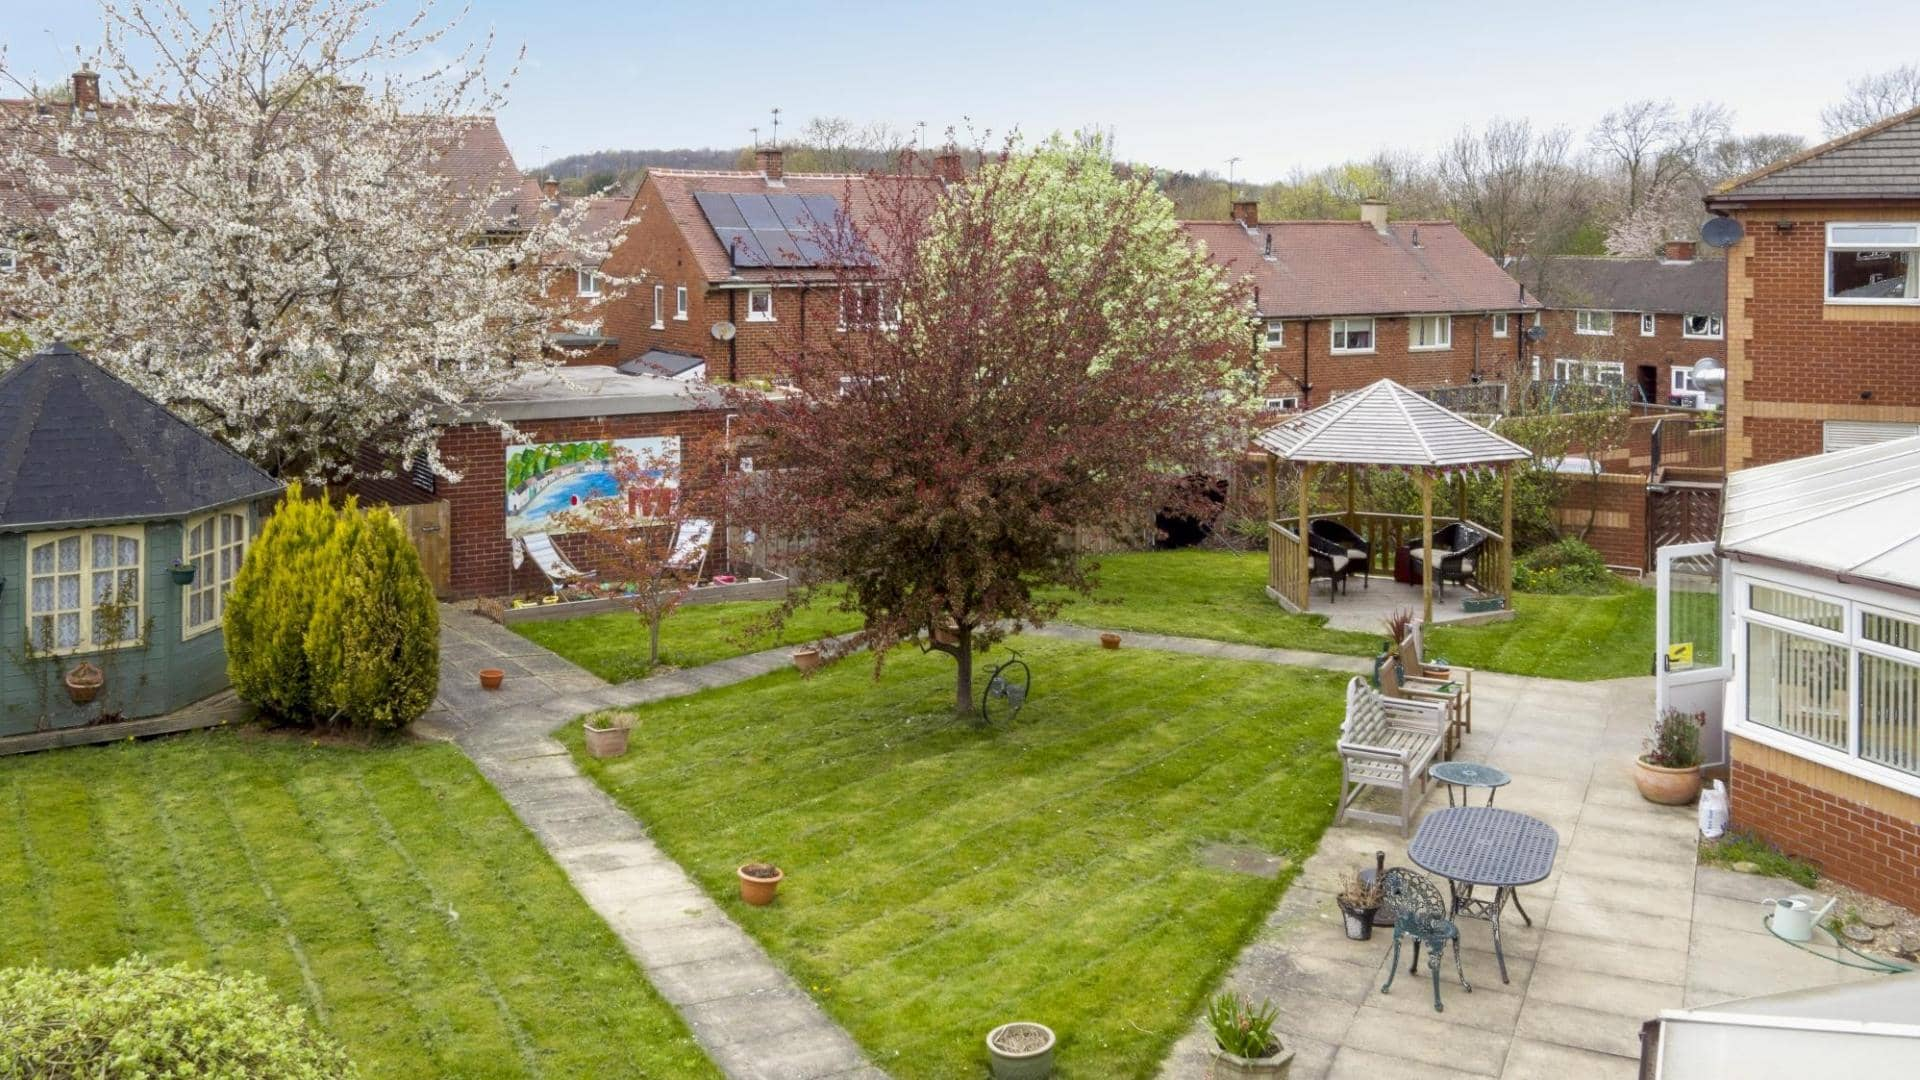 Cherry Trees Care Home in Rotherham | Orchard Care Homes